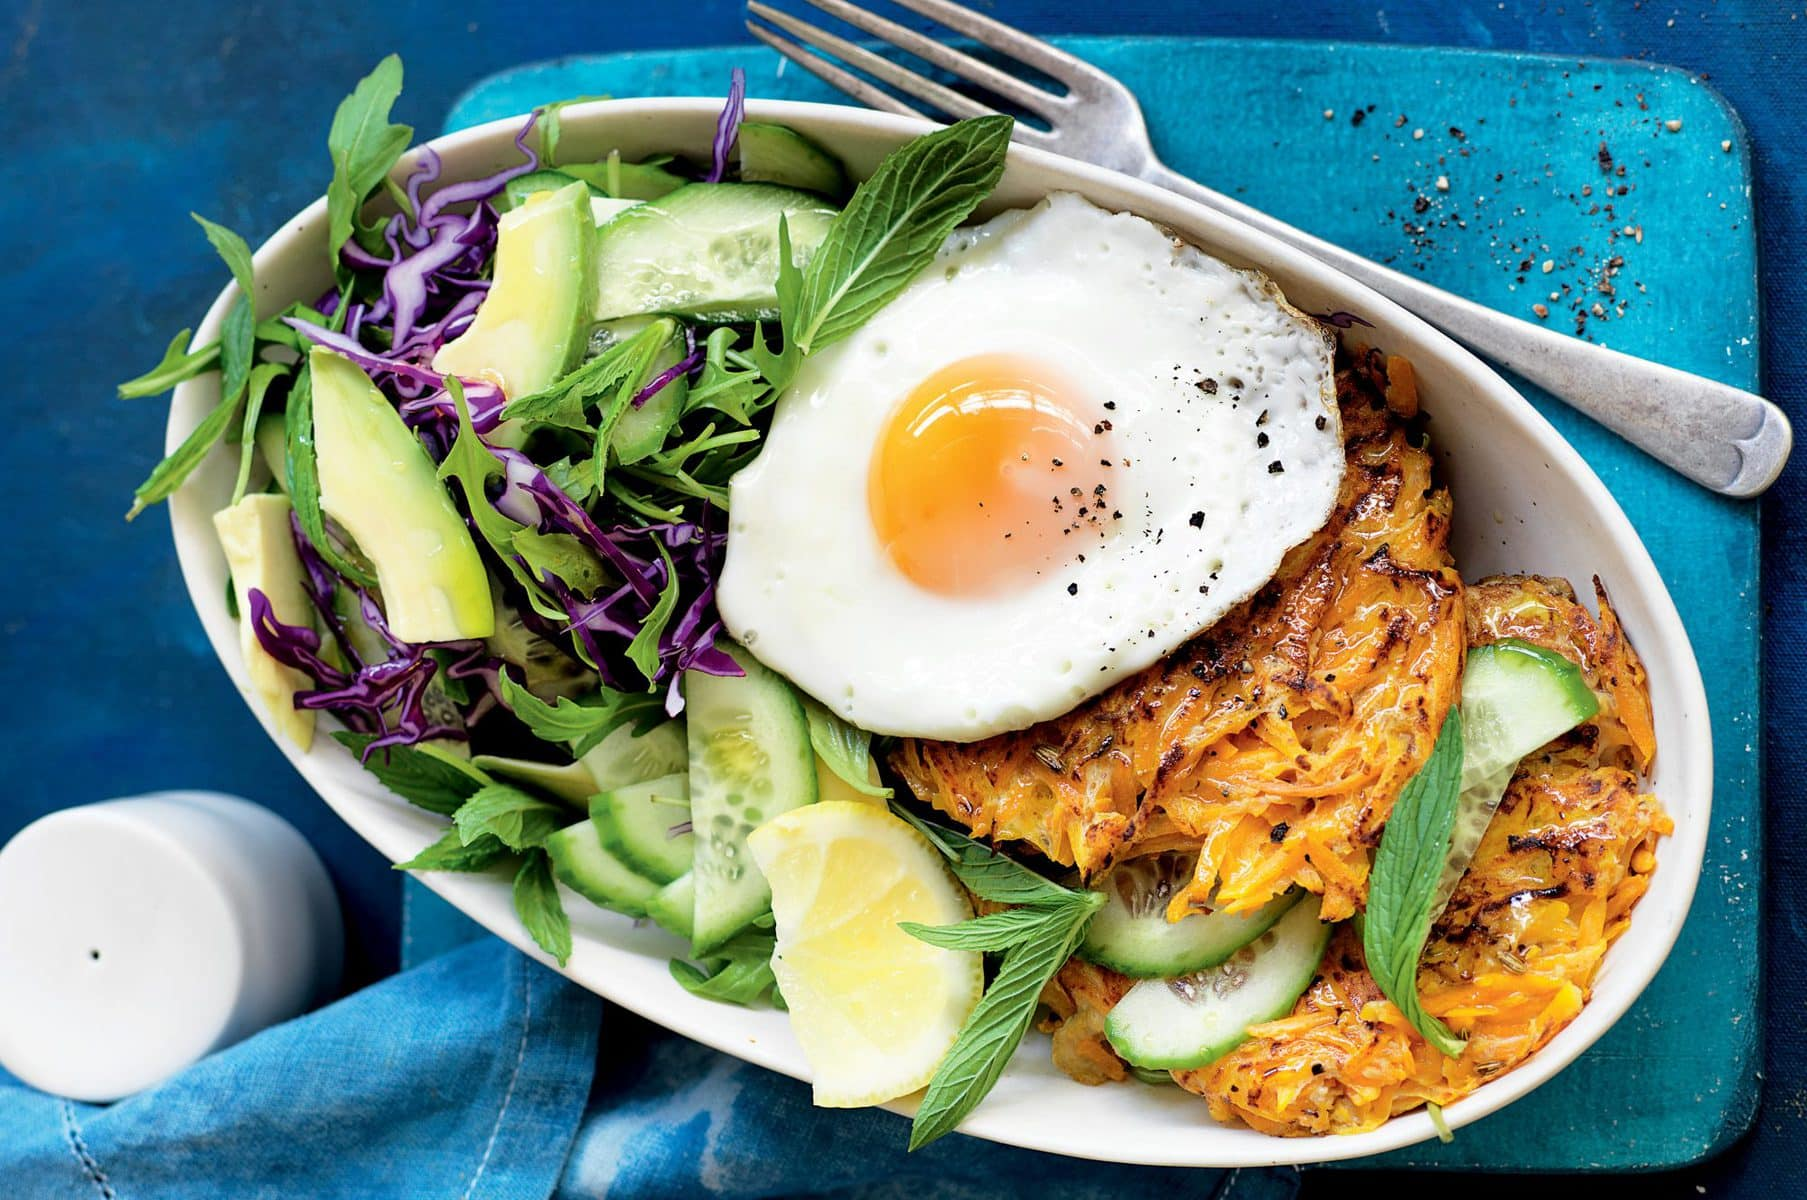 Rosemary and fennel pumpkin rosti with fried eggs